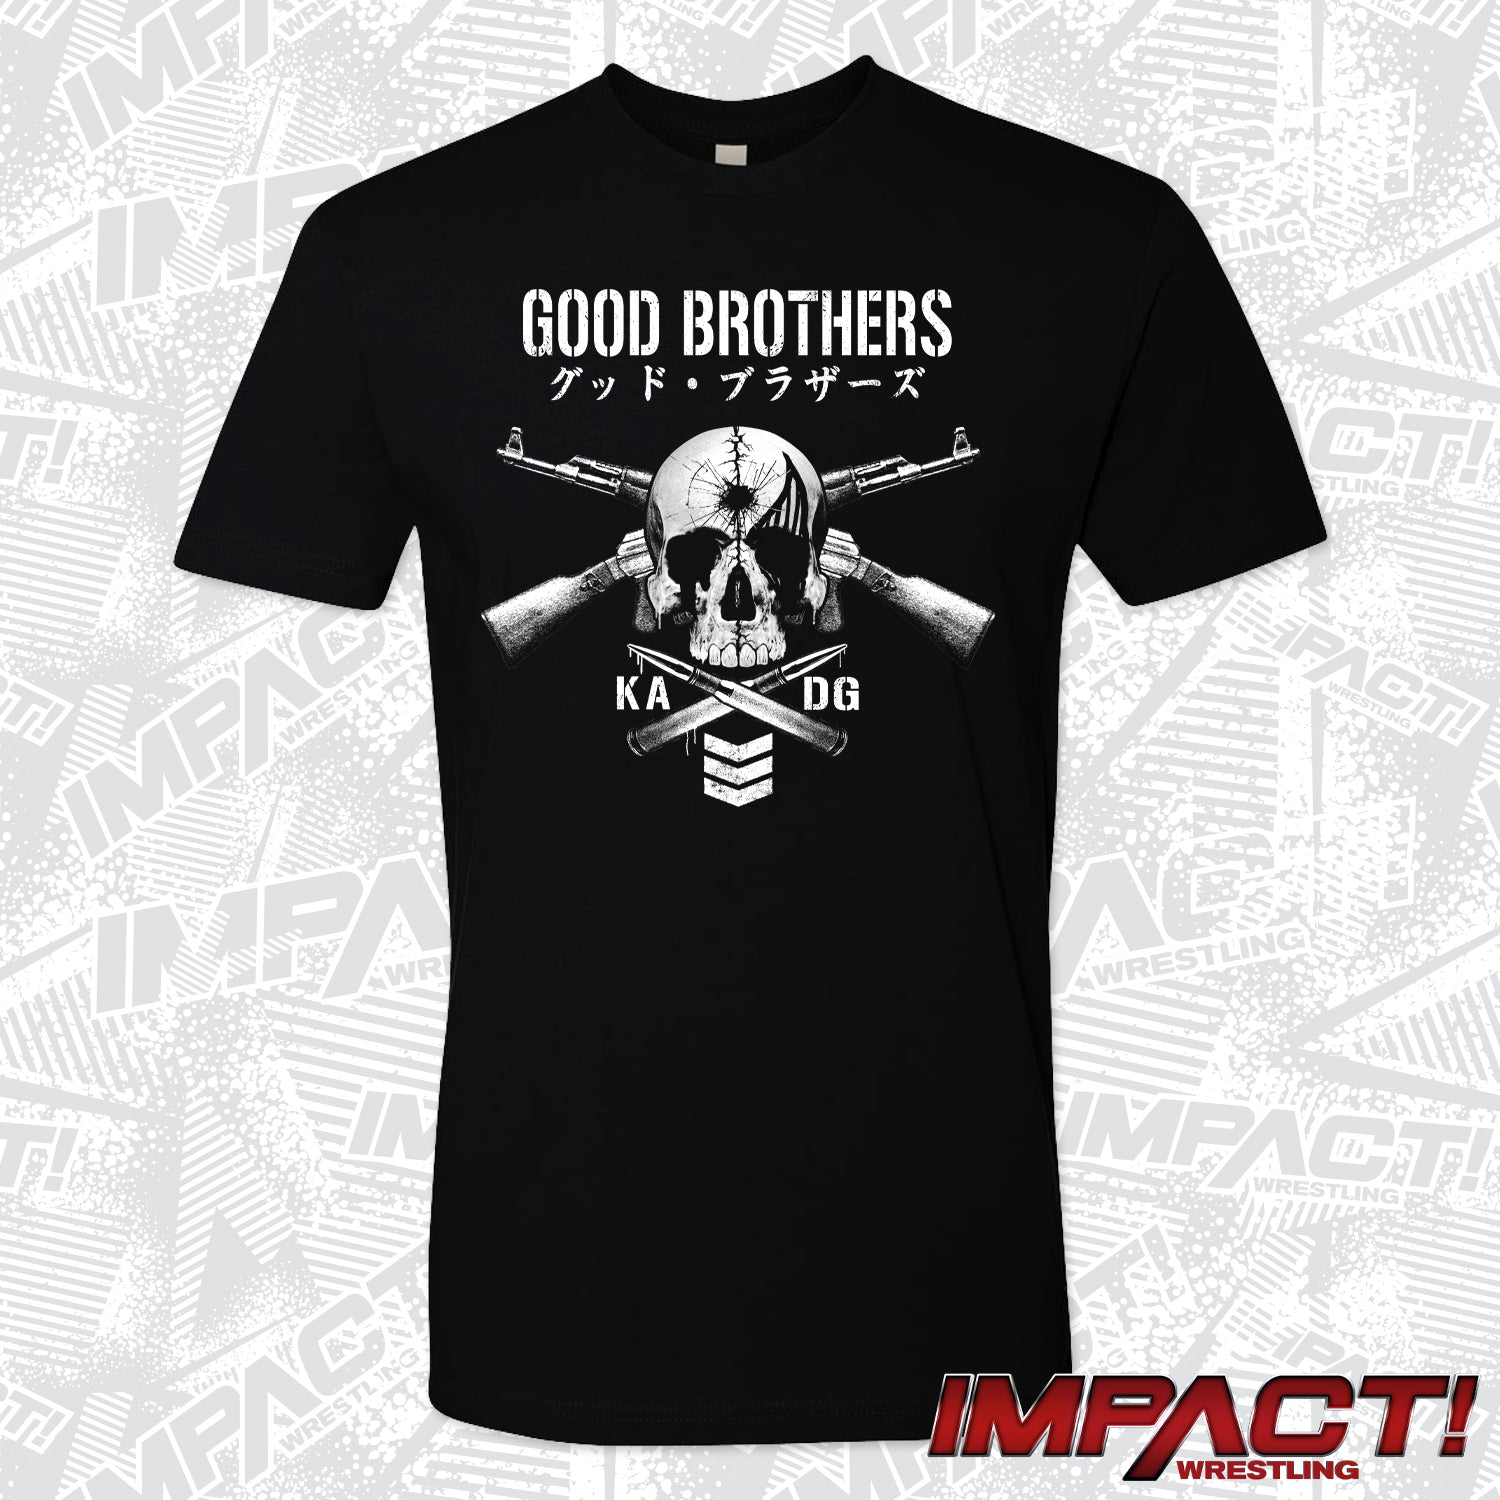 The Good Brothers Short Sleeve Tee